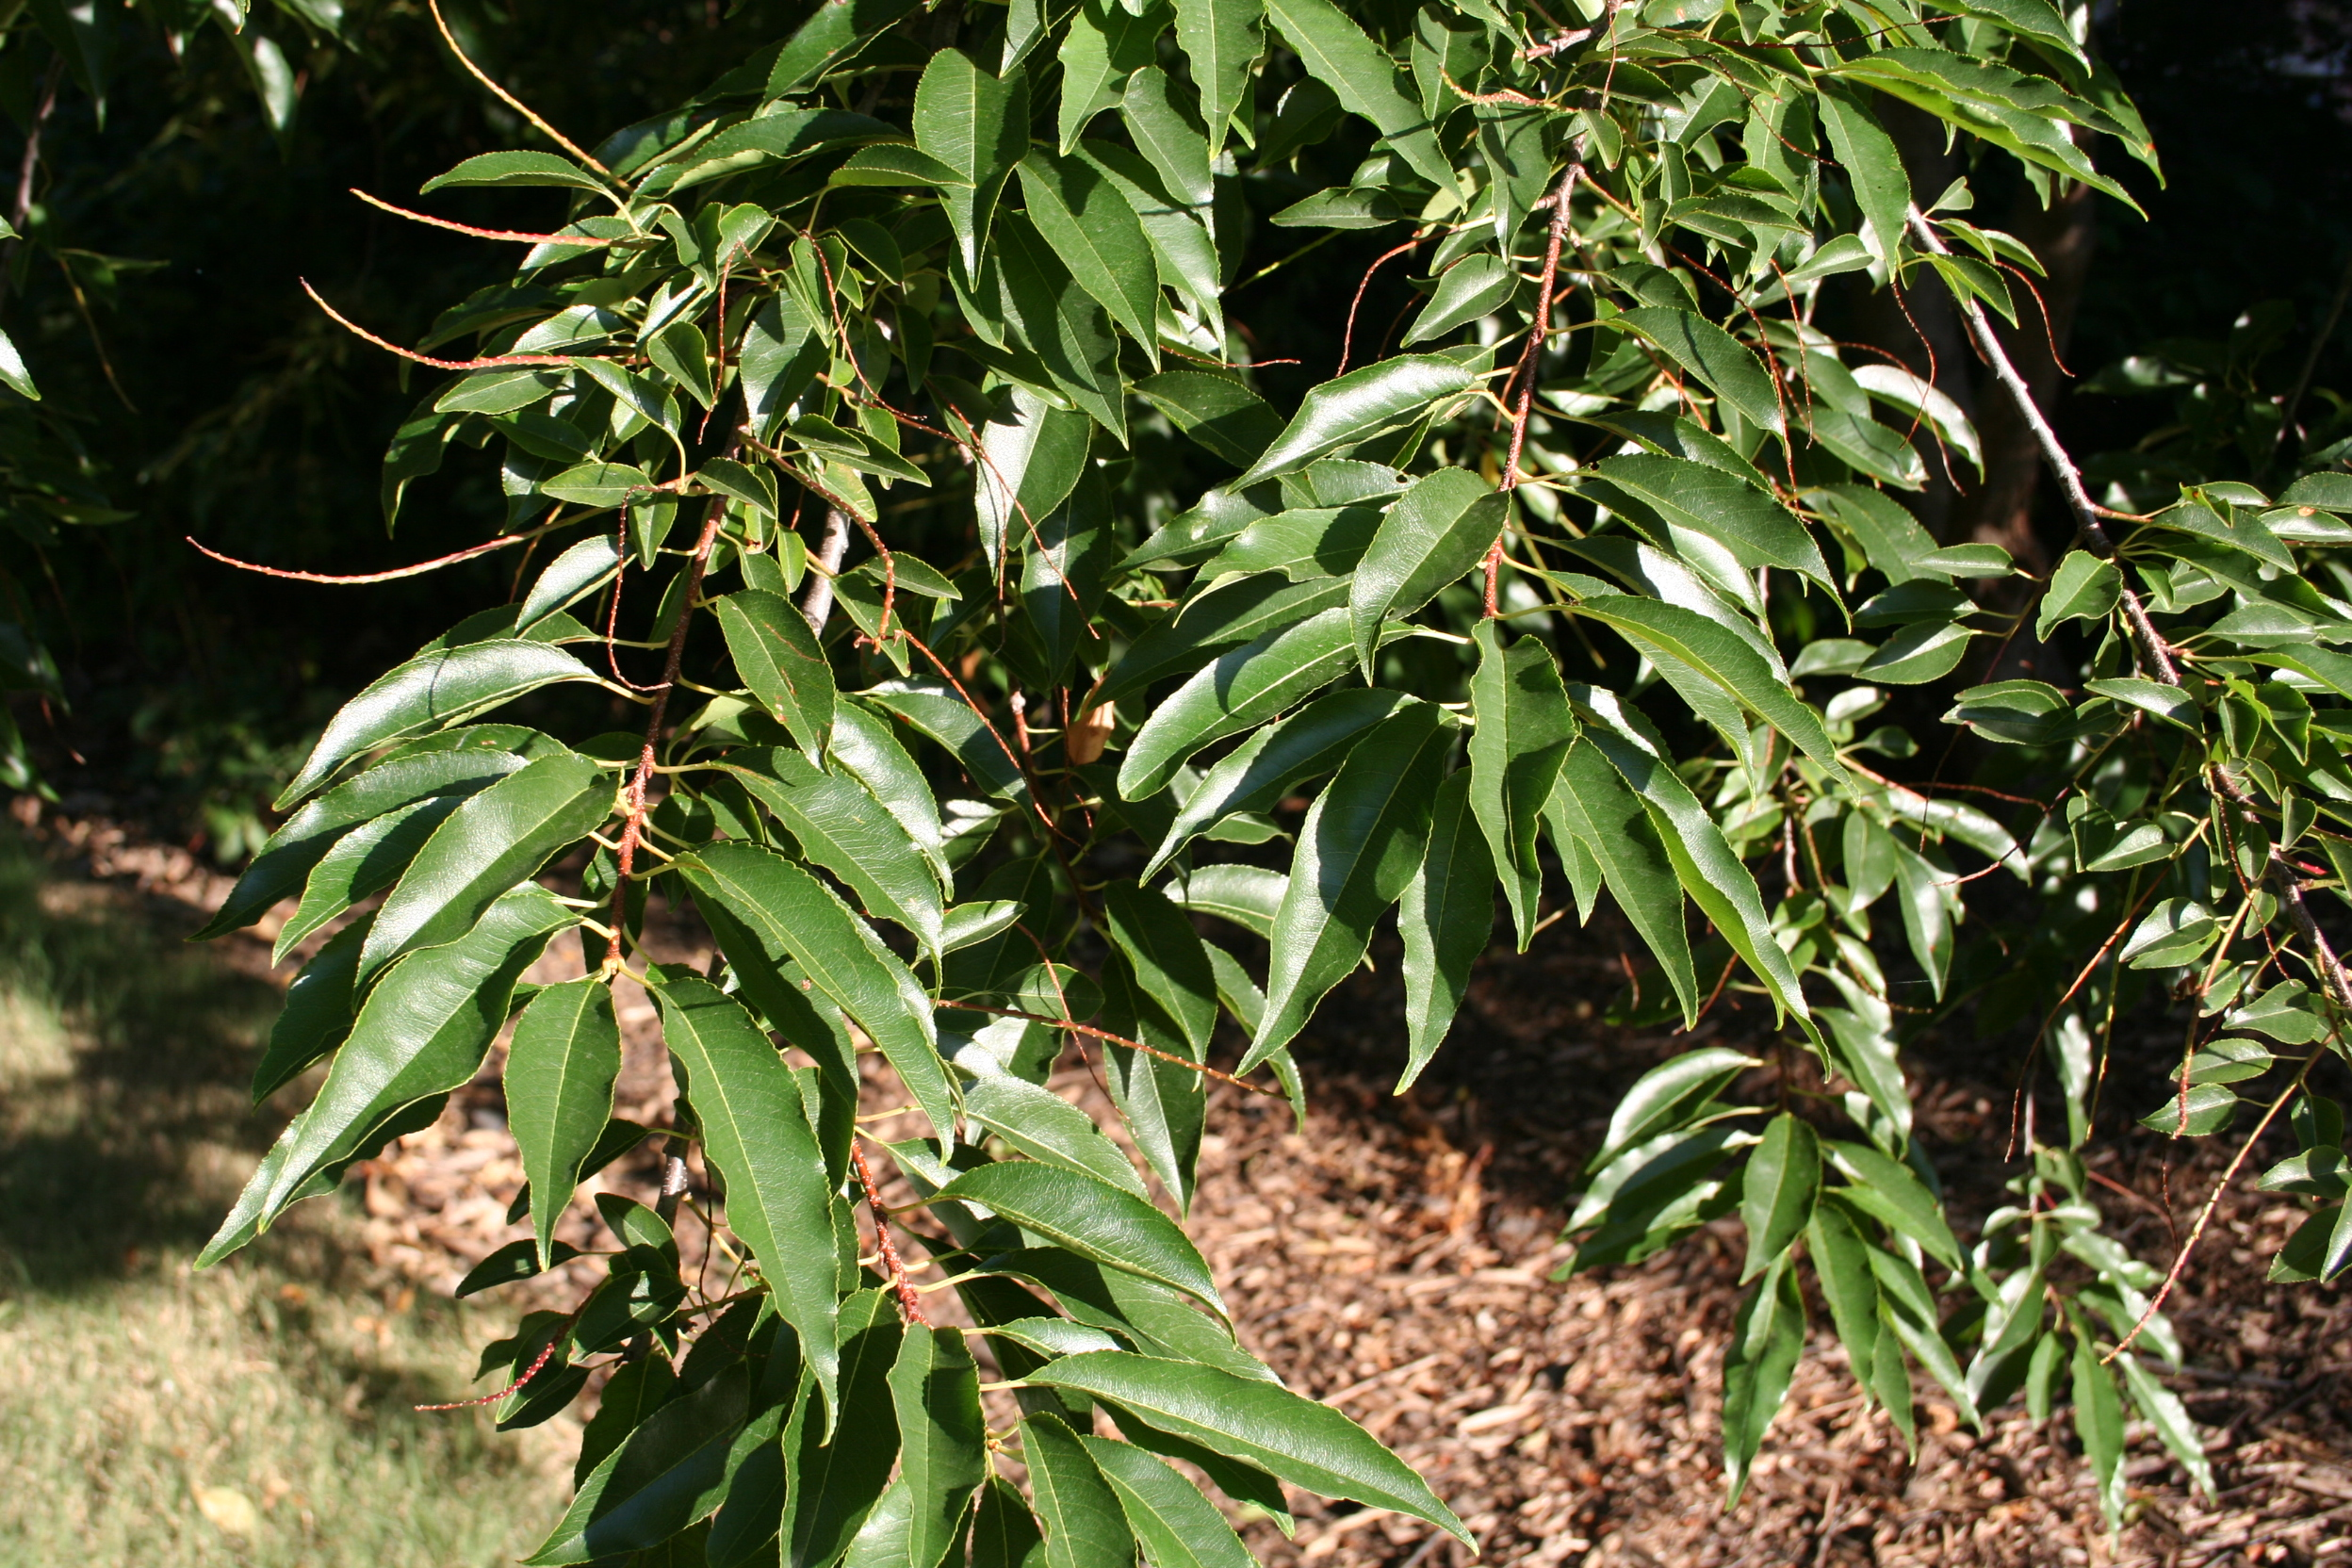 Closeup of leaves